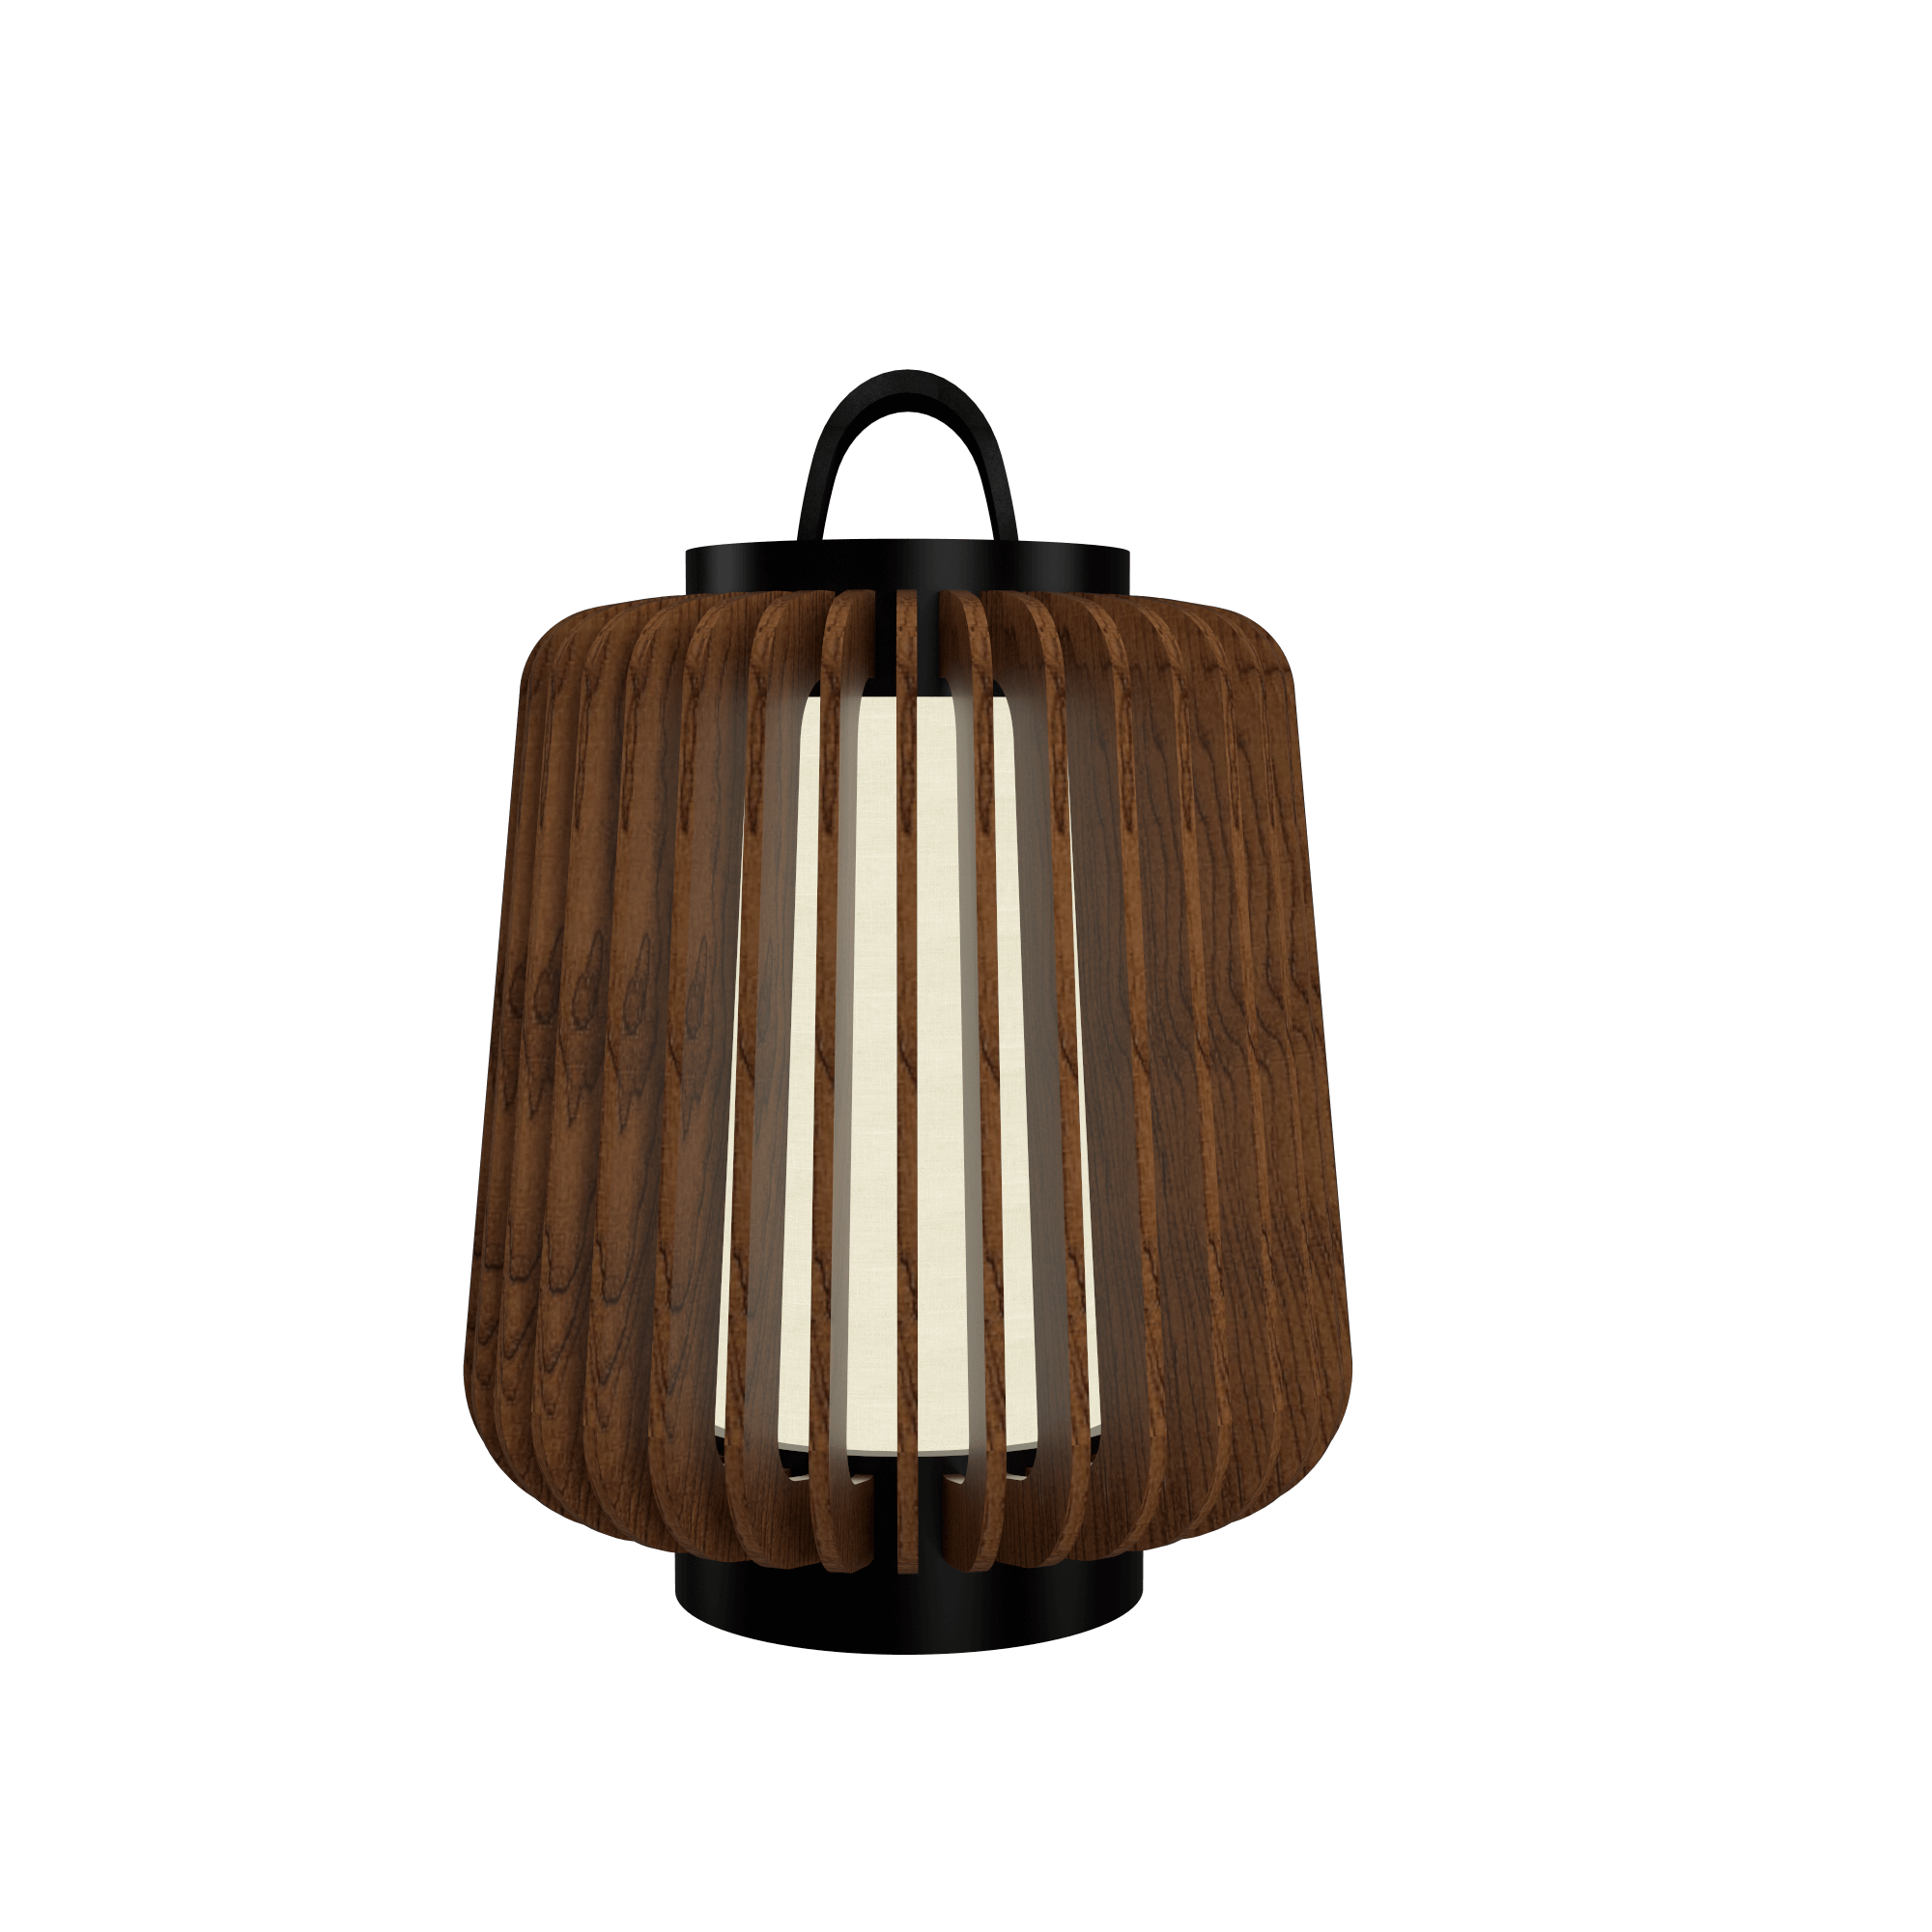 Table Lamp Accord Stecche Di Legno 7059 - Stecche Di Legno Line Accord Lighting | 06. Imbuia